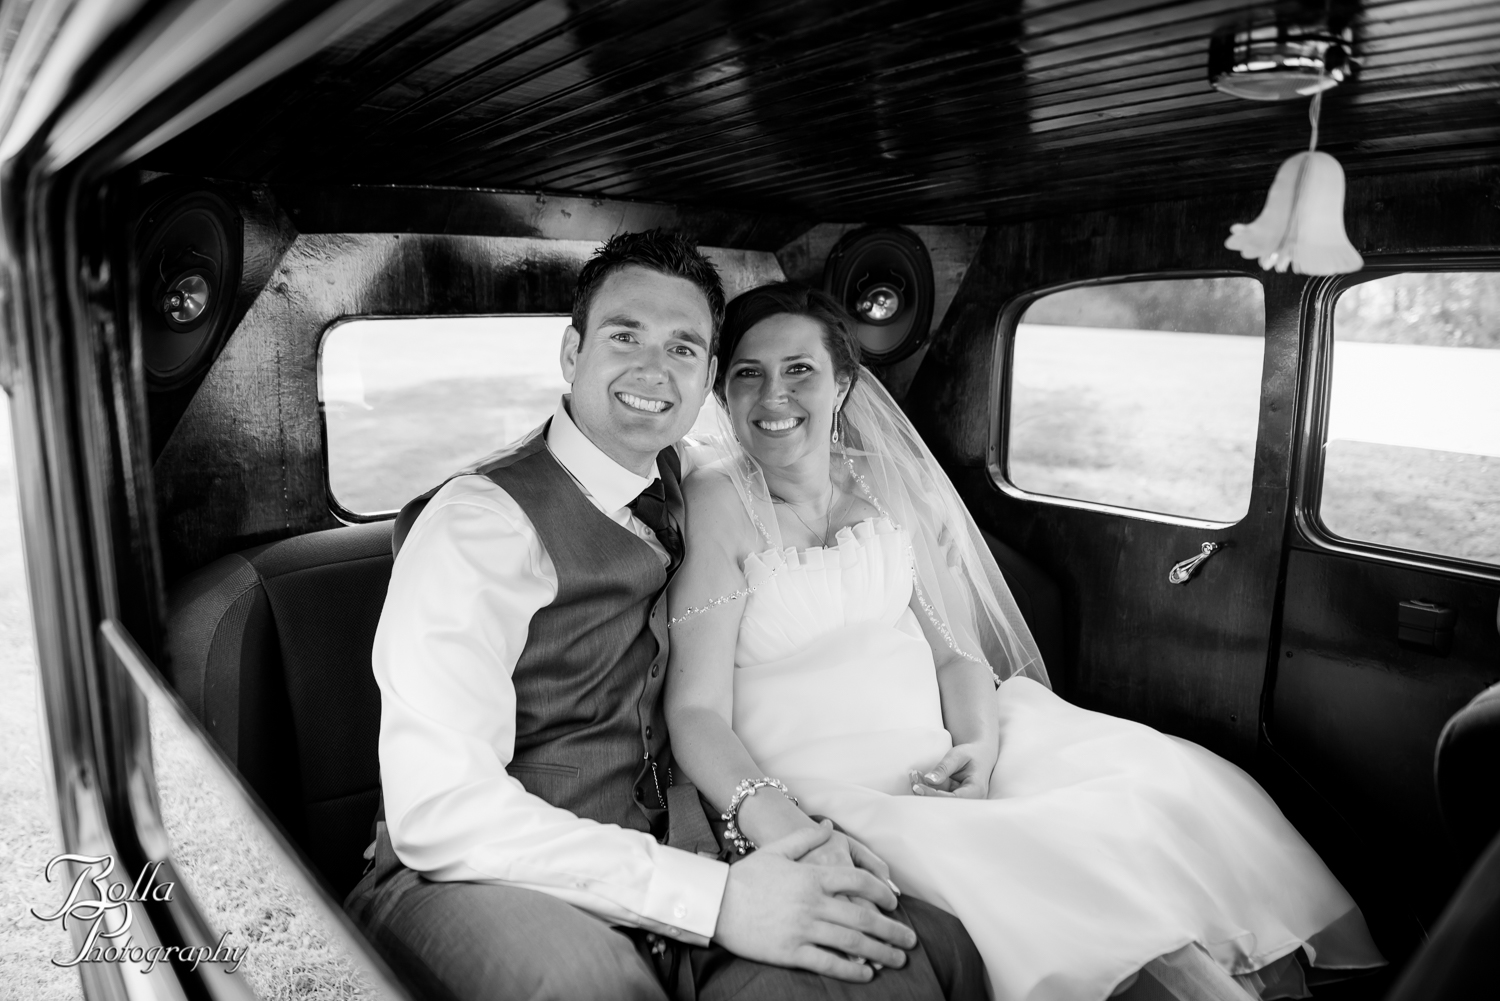 Bolla_Photography_St_Louis_wedding_photographer-0364.jpg